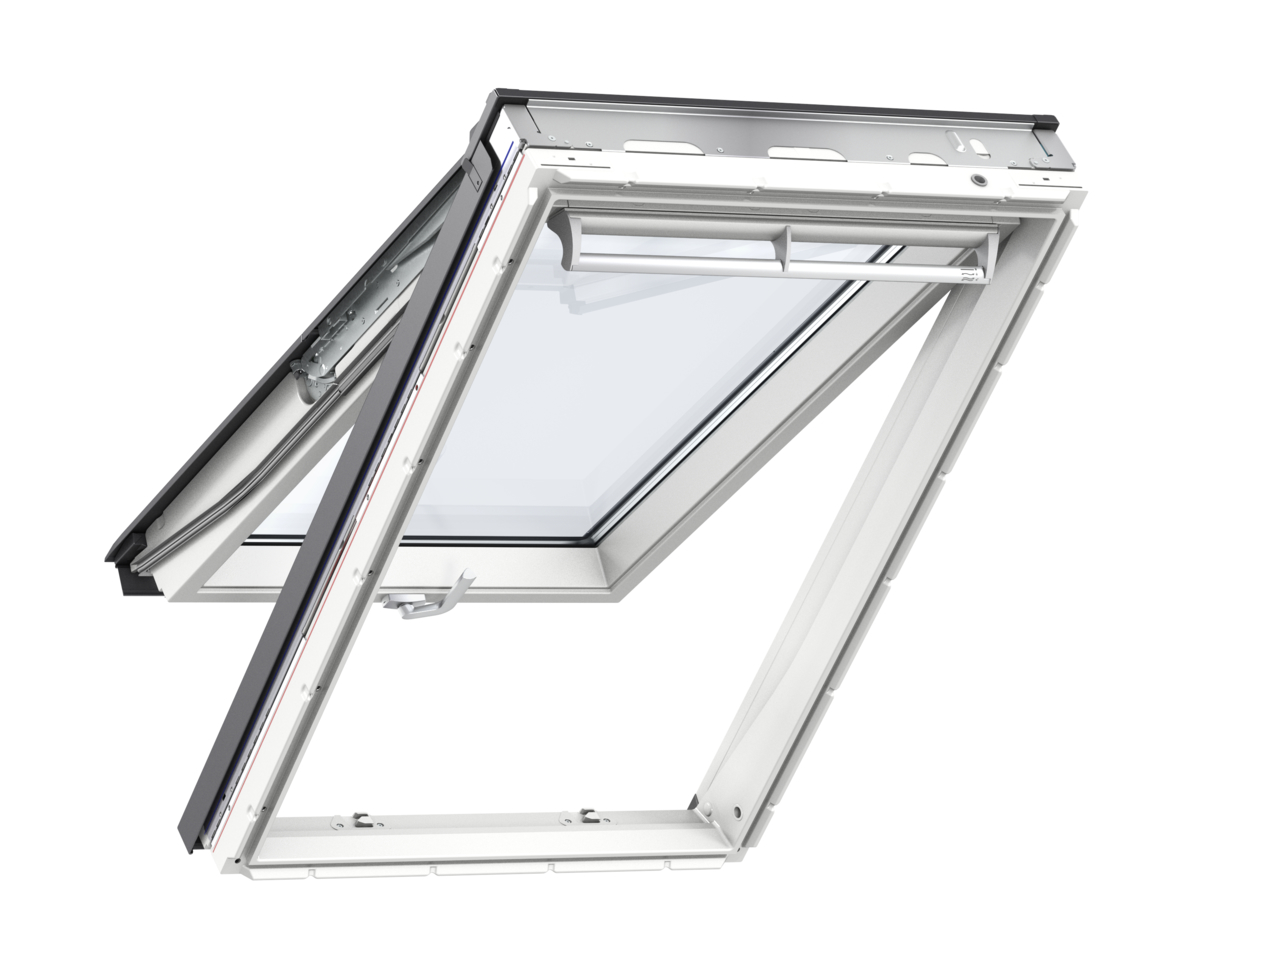 Velux GPU SK06 1140 x 1180mm Top Hung 60Pane Roof Window - White Polyurethane